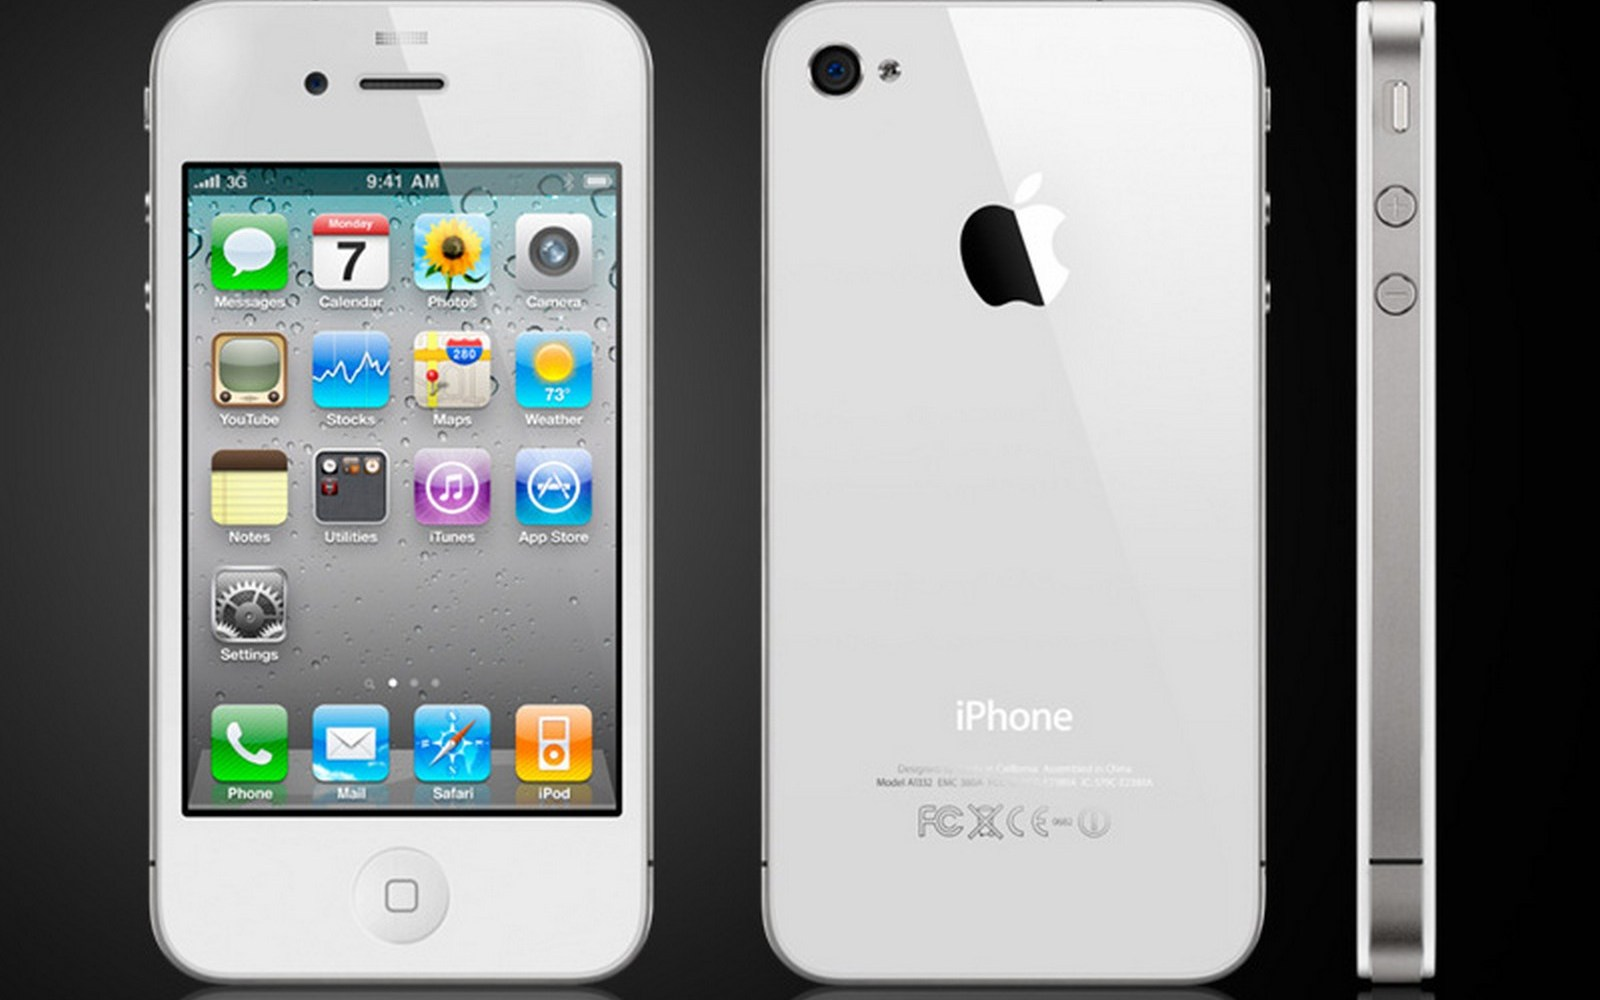 Potentially eligible iPhone/iPod users in liquid damage class action suit now being contacted